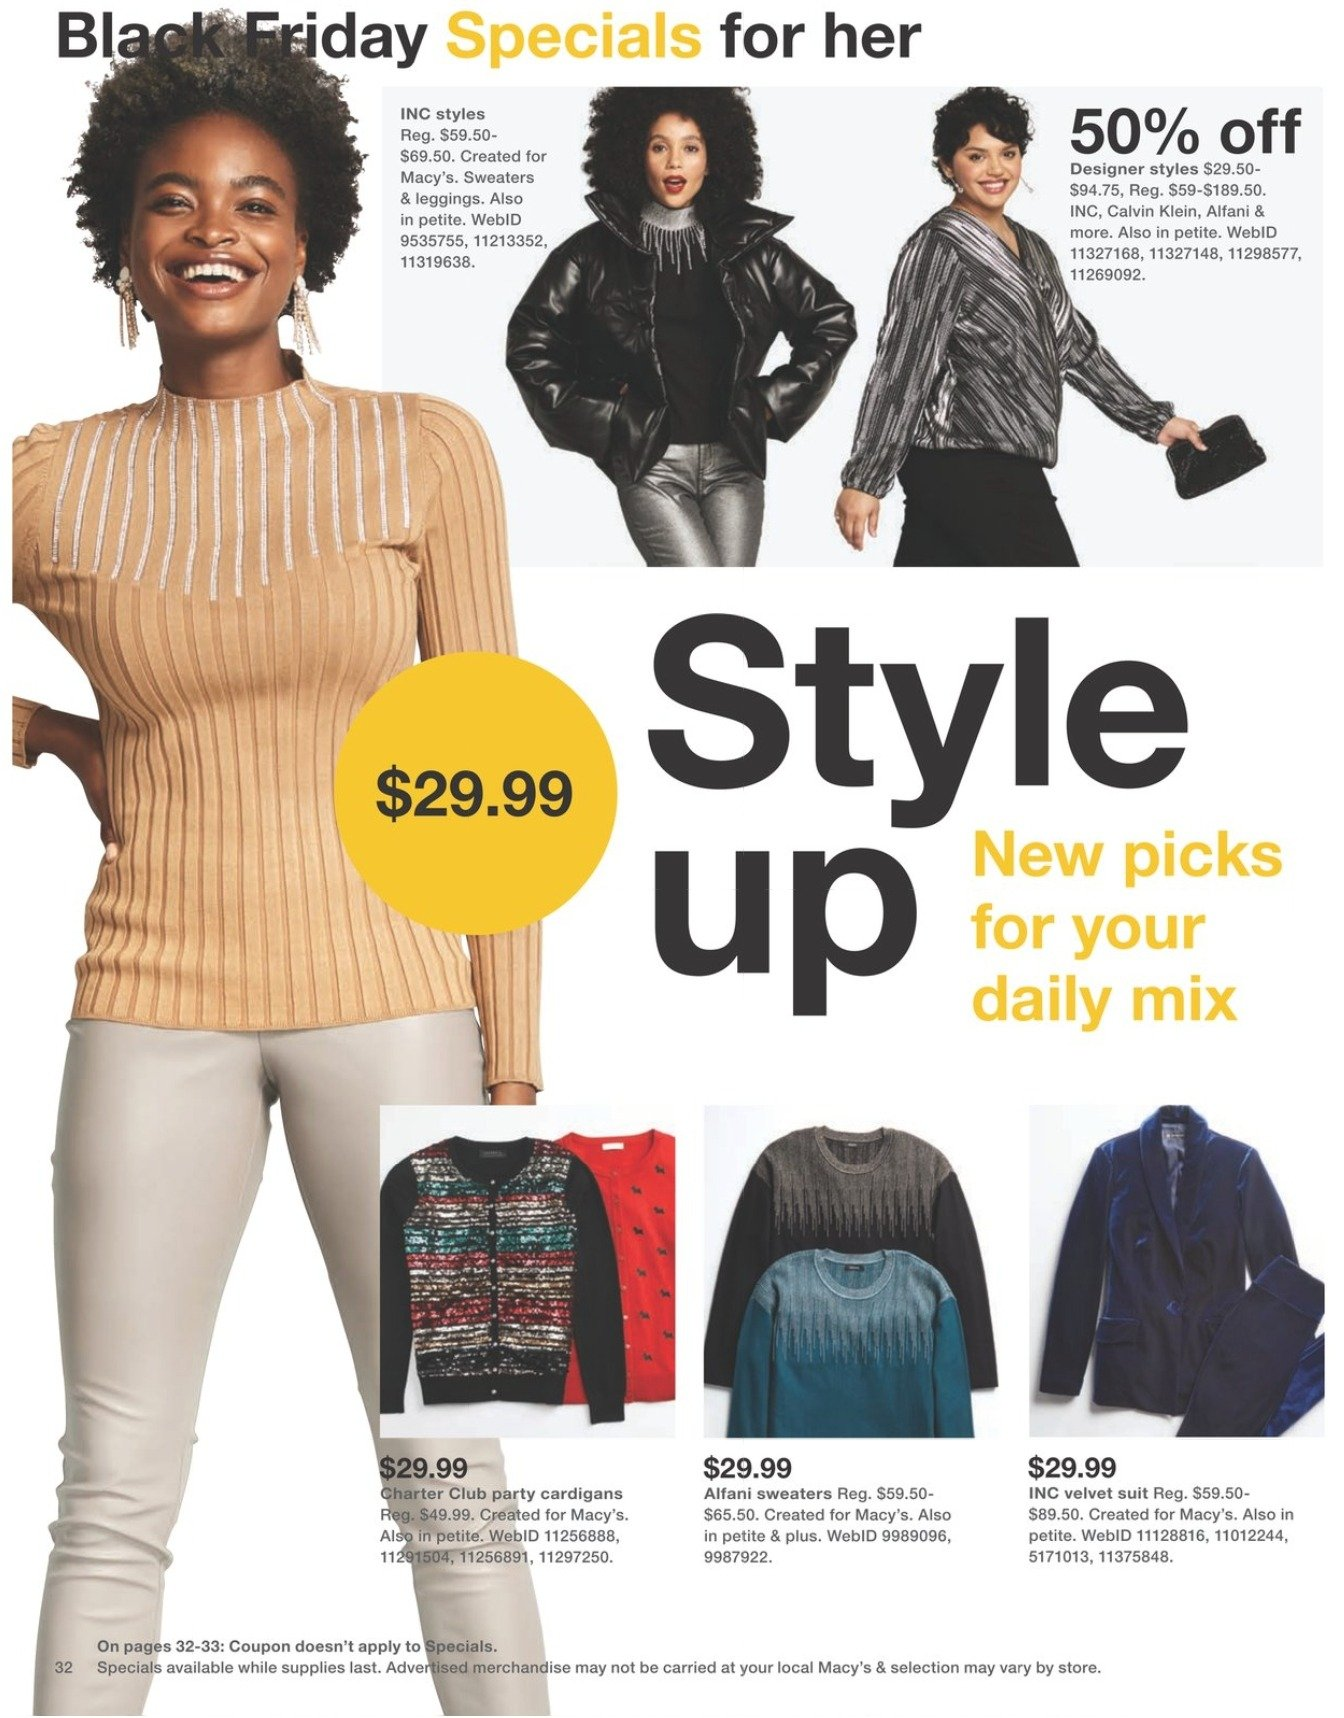 Macy's Black Friday 2020 Page 32